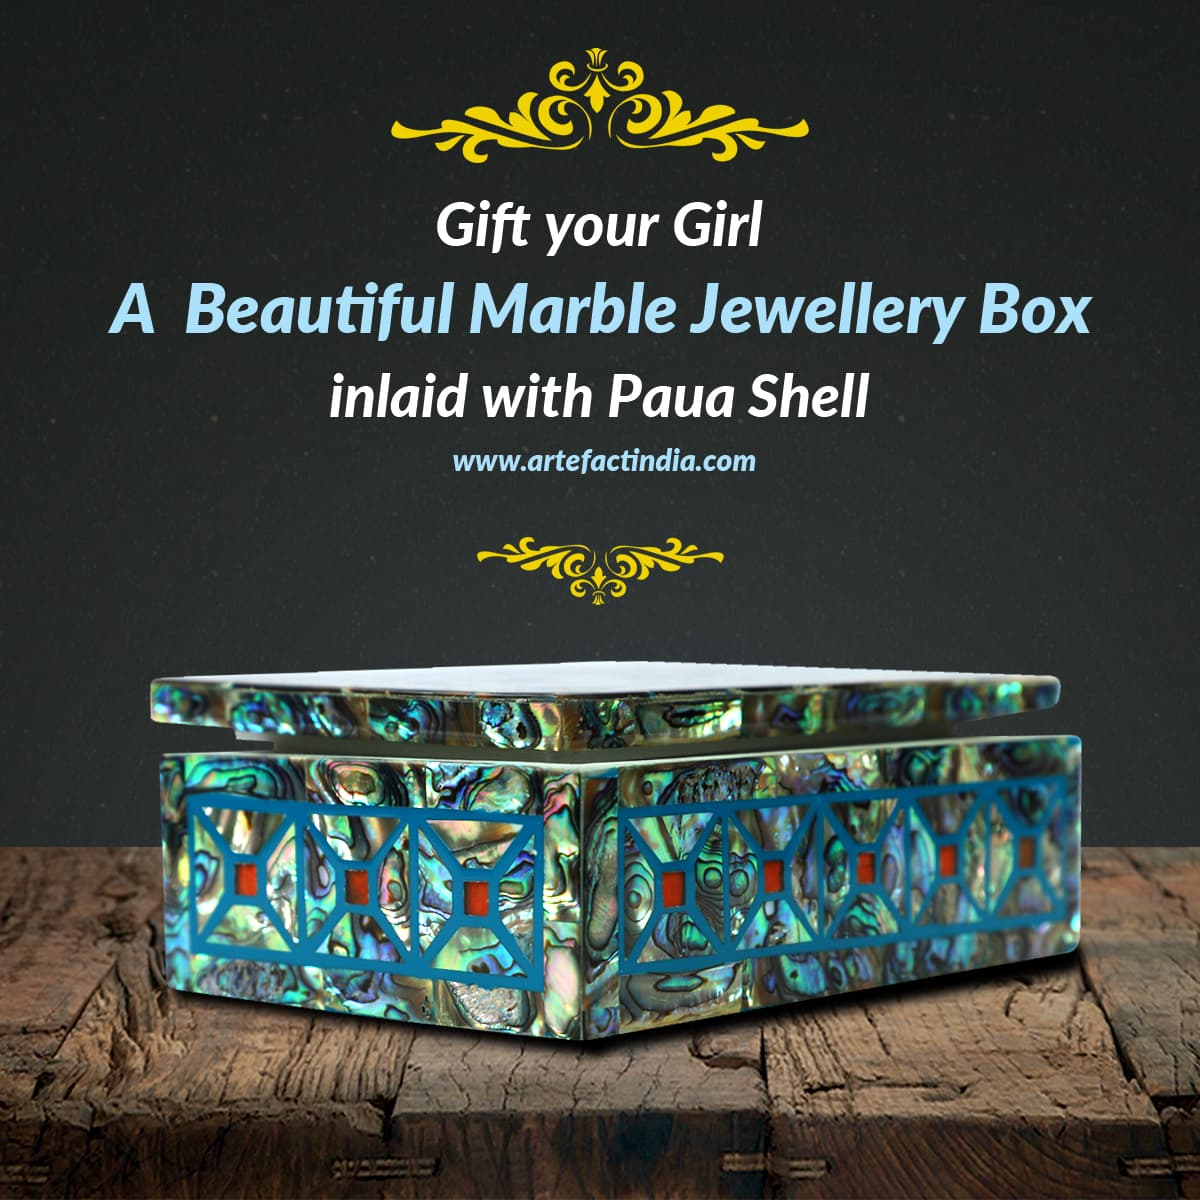 Gift your Girl a Beautiful Marble Jewellery Box inlaid with Paua Shell